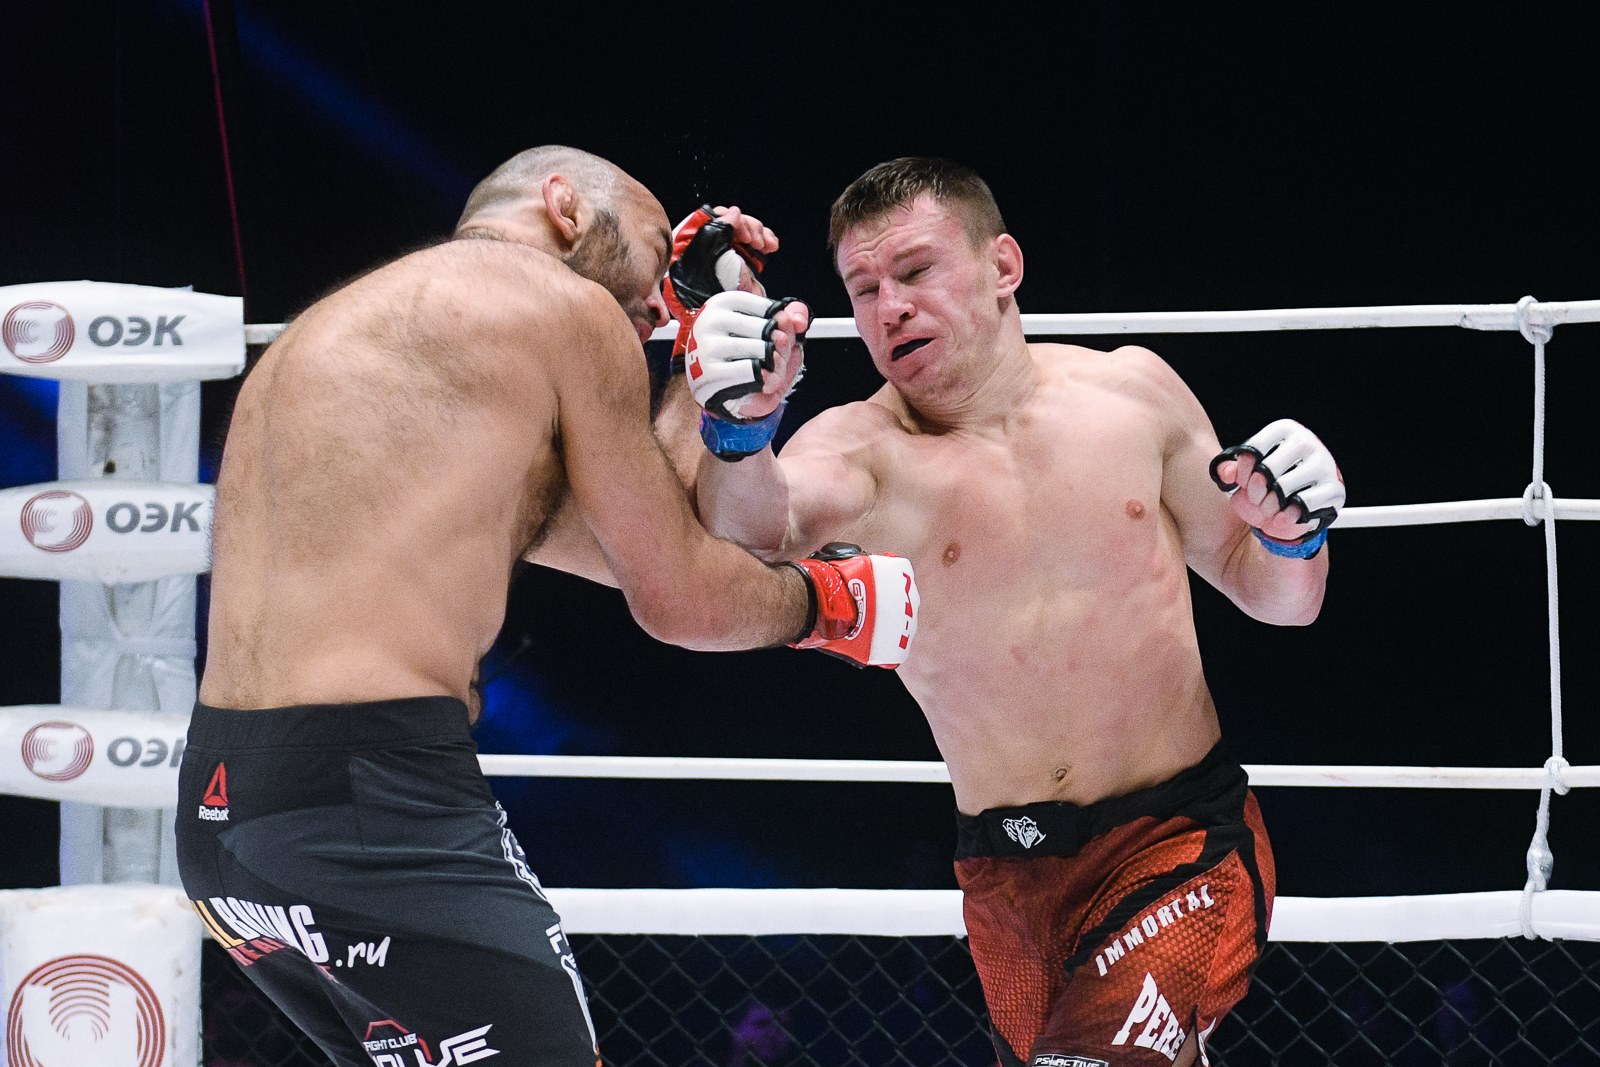 Andrey Lezhnev ready for Nate Landwehr M-1 Challenge featherweight title fight